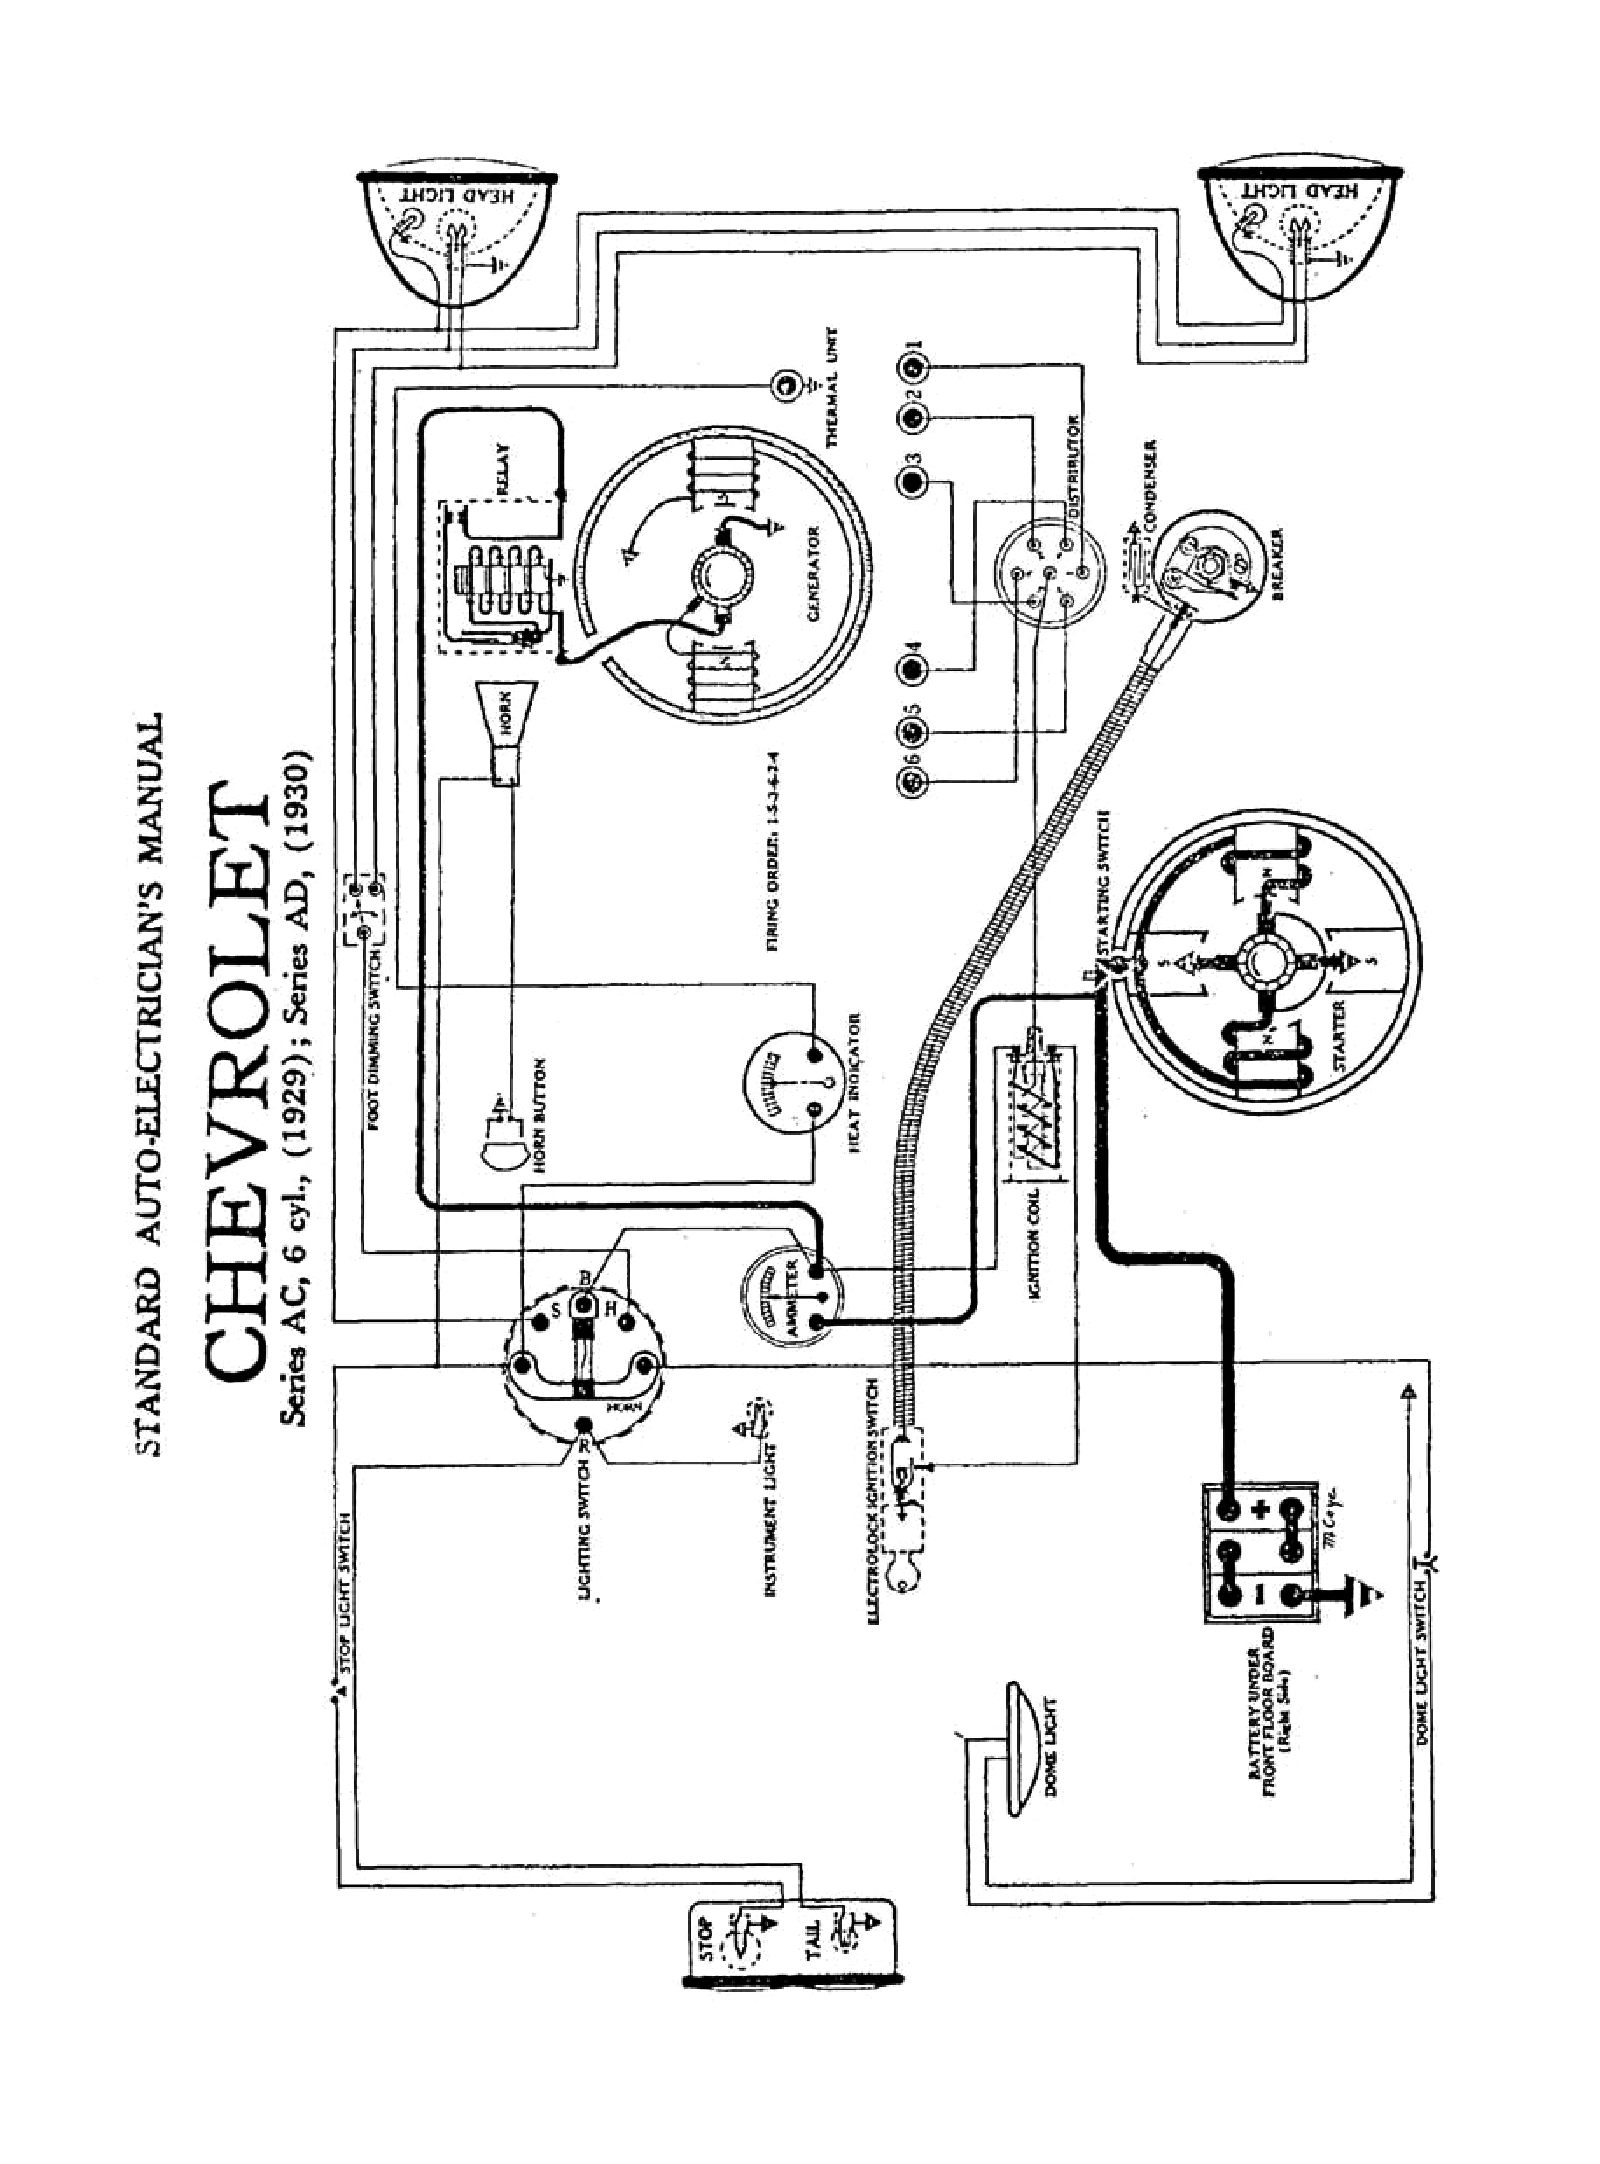 2930wiring chevy wiring diagrams Ford Schematics at gsmx.co